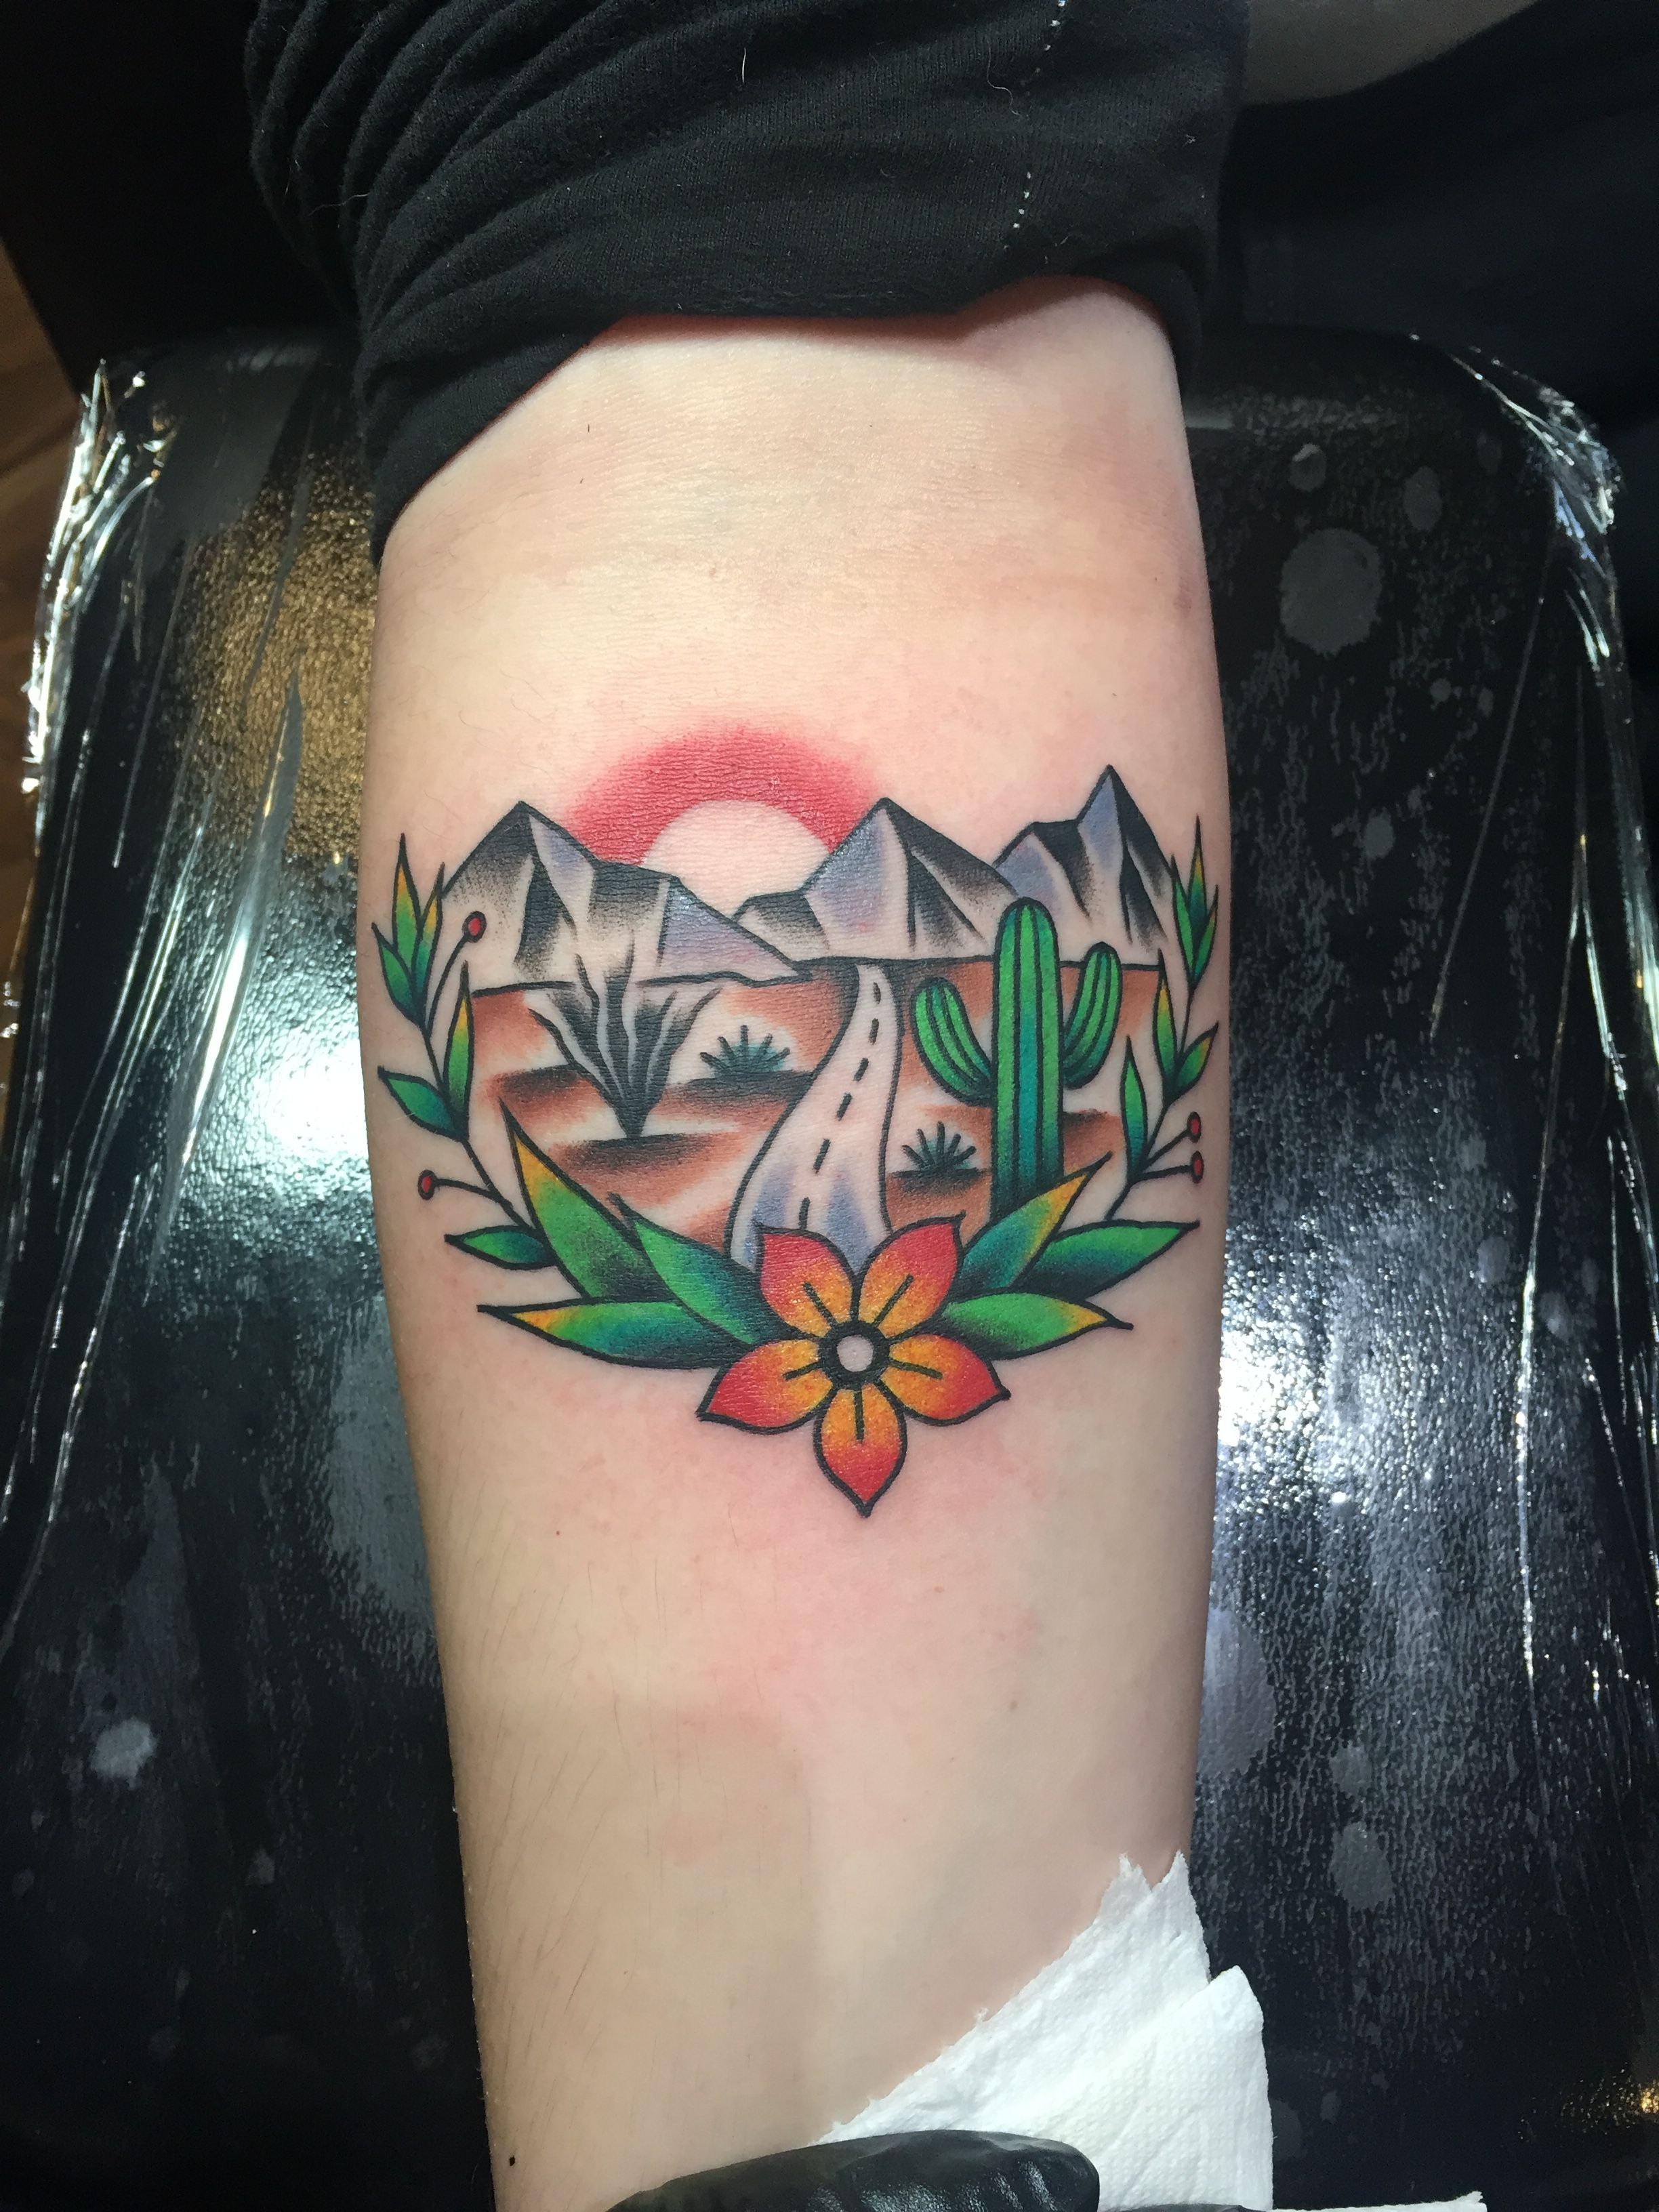 Cactus/ Arizona themed tattoo done by Old Timey Ridge in Tucson ...